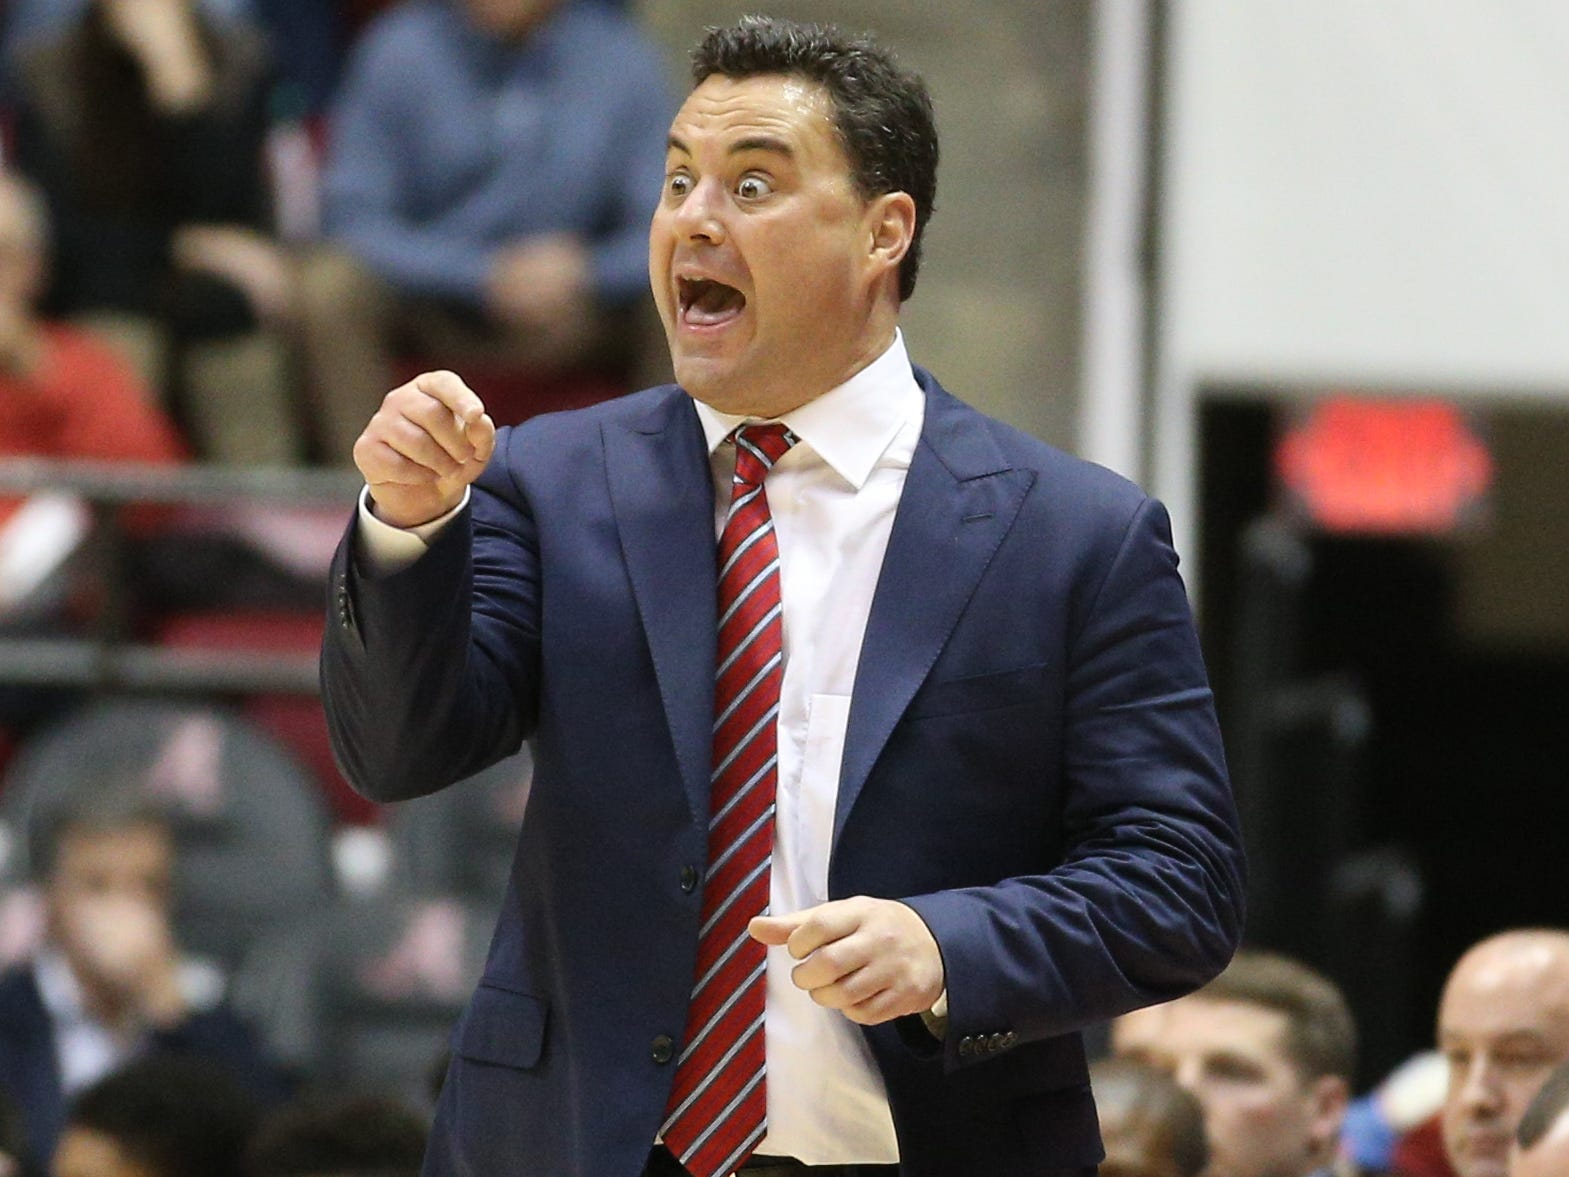 Dec 9, 2018; Tuscaloosa, AL, USA; Arizona Wildcats head coach Sean Miller reacts to his teams play during the first half against Alabama Crimson Tide at Coleman Coliseum. Mandatory Credit: Marvin Gentry-USA TODAY Sports